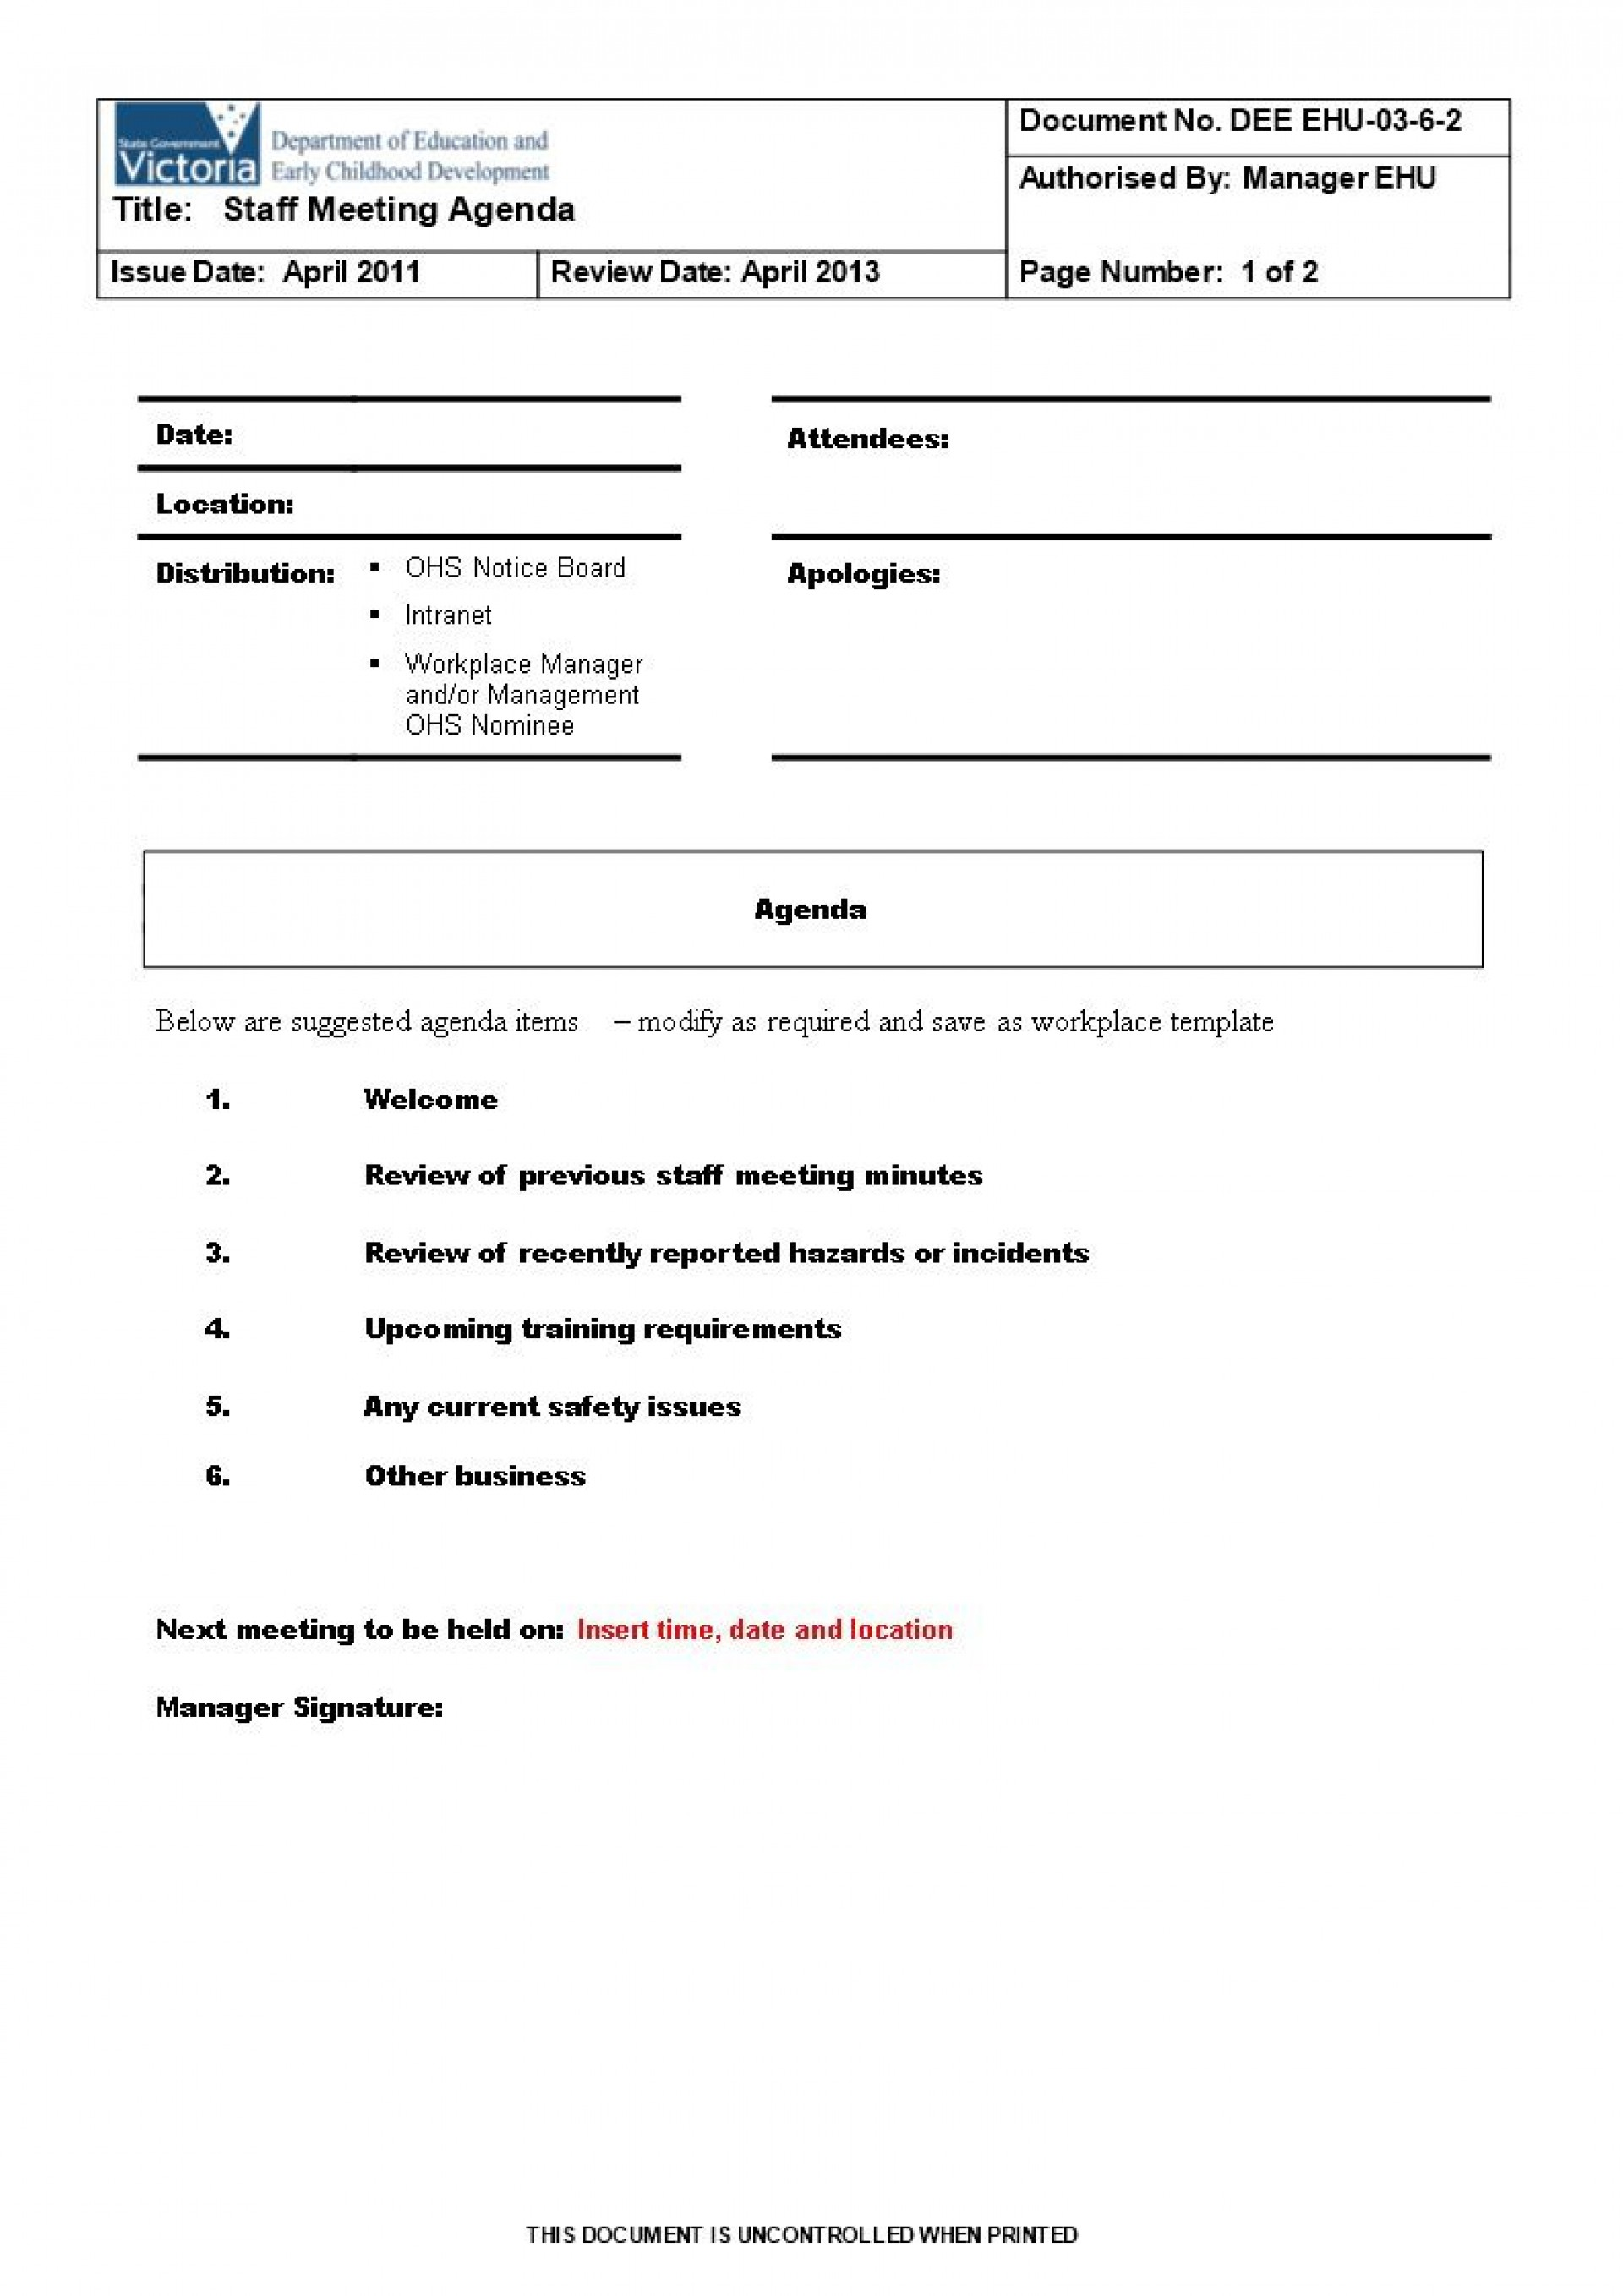 003 Excellent Staff Meeting Agenda Template High Def  Example Format1920